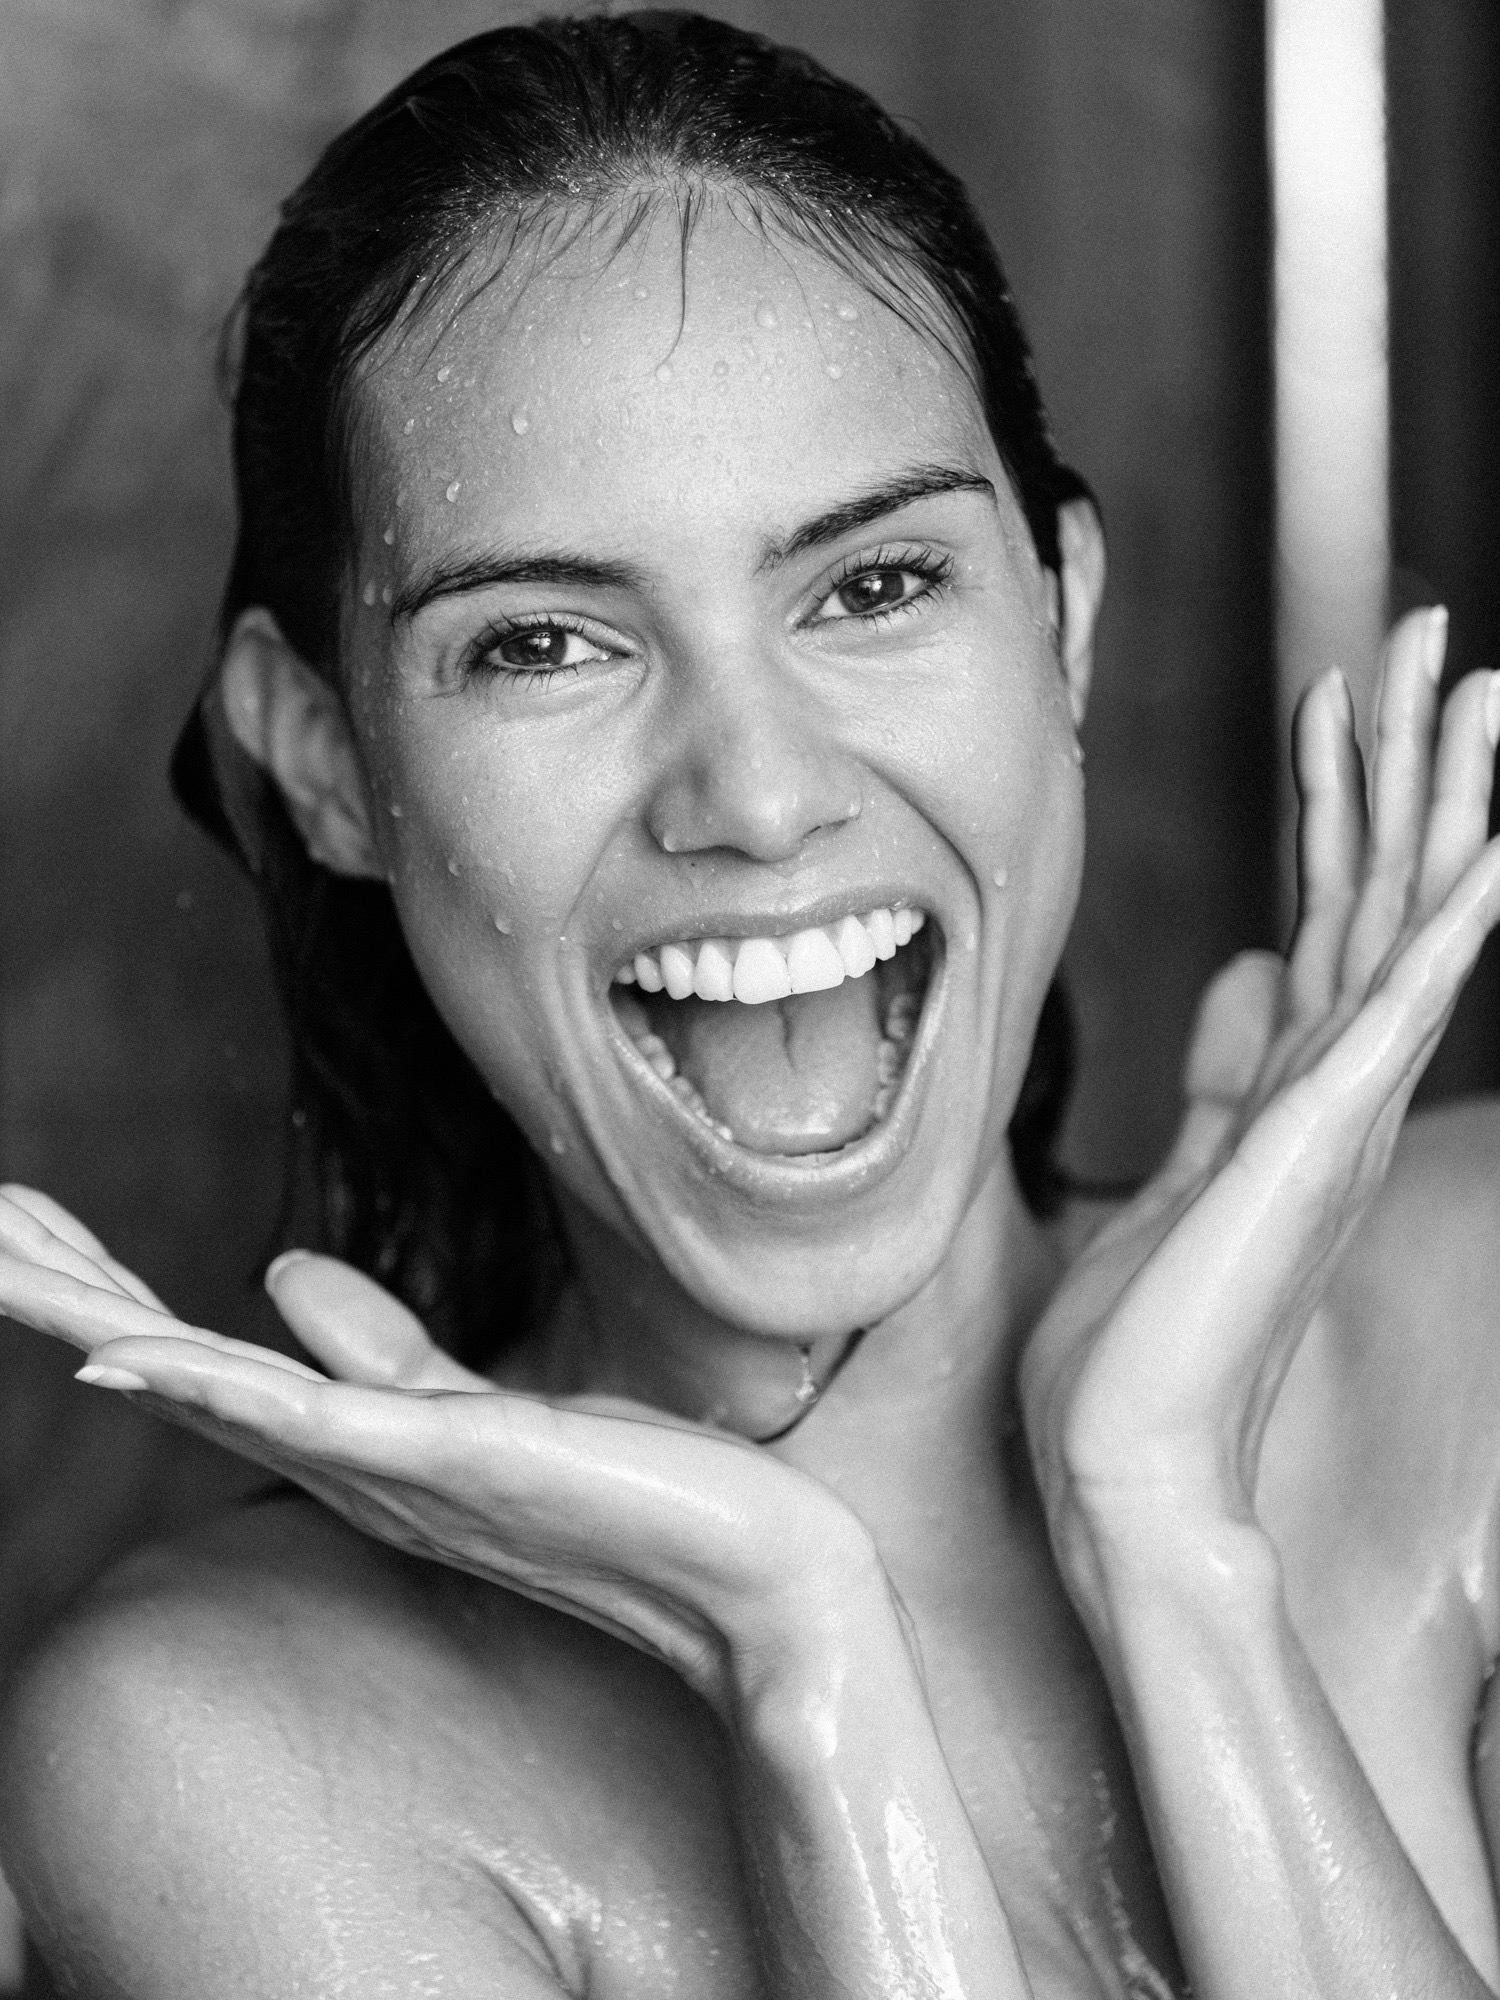 woman smiling in shower